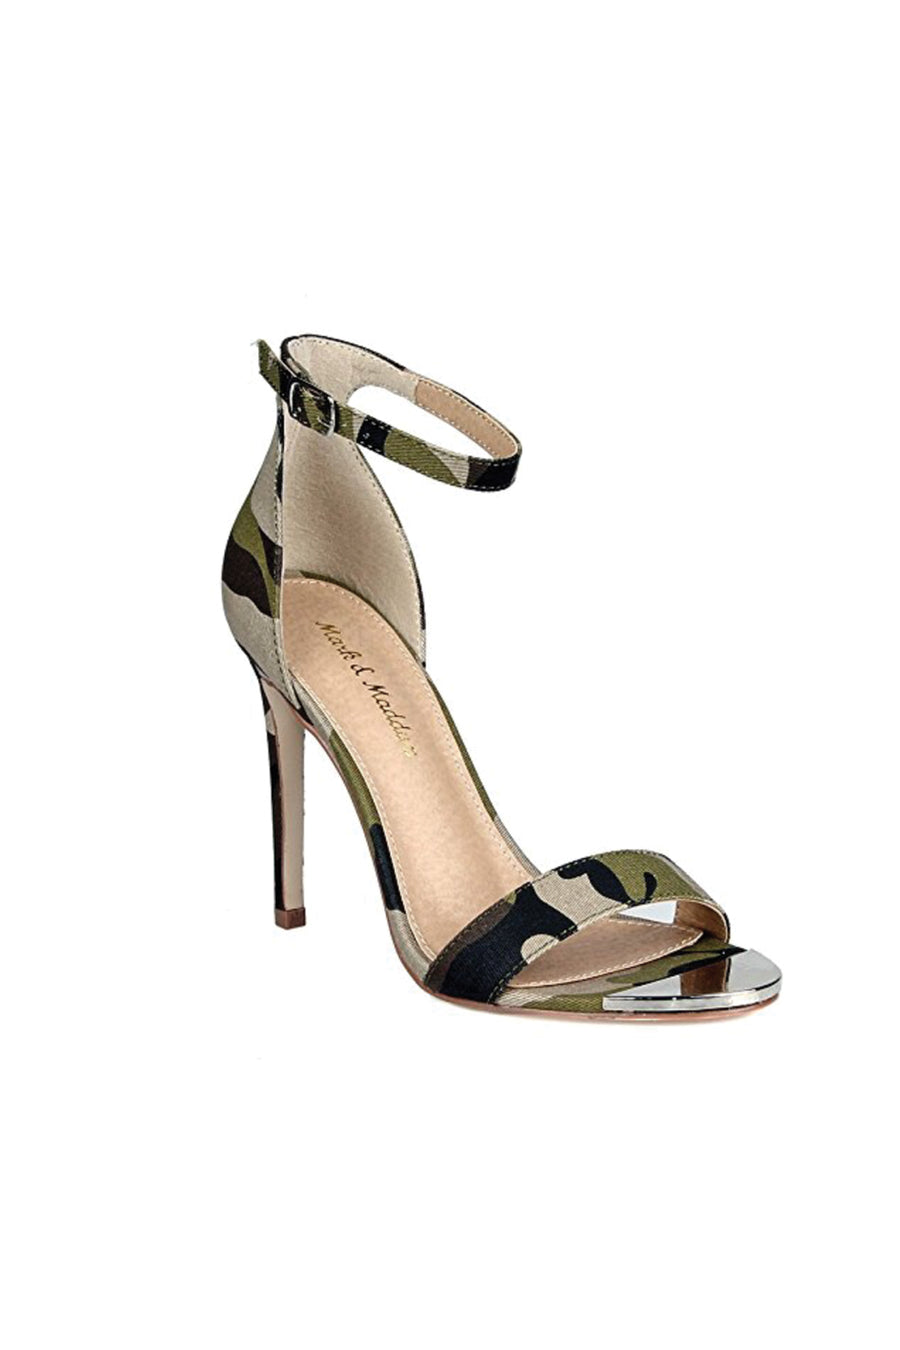 Camoflauge Ankle Strap High Heels